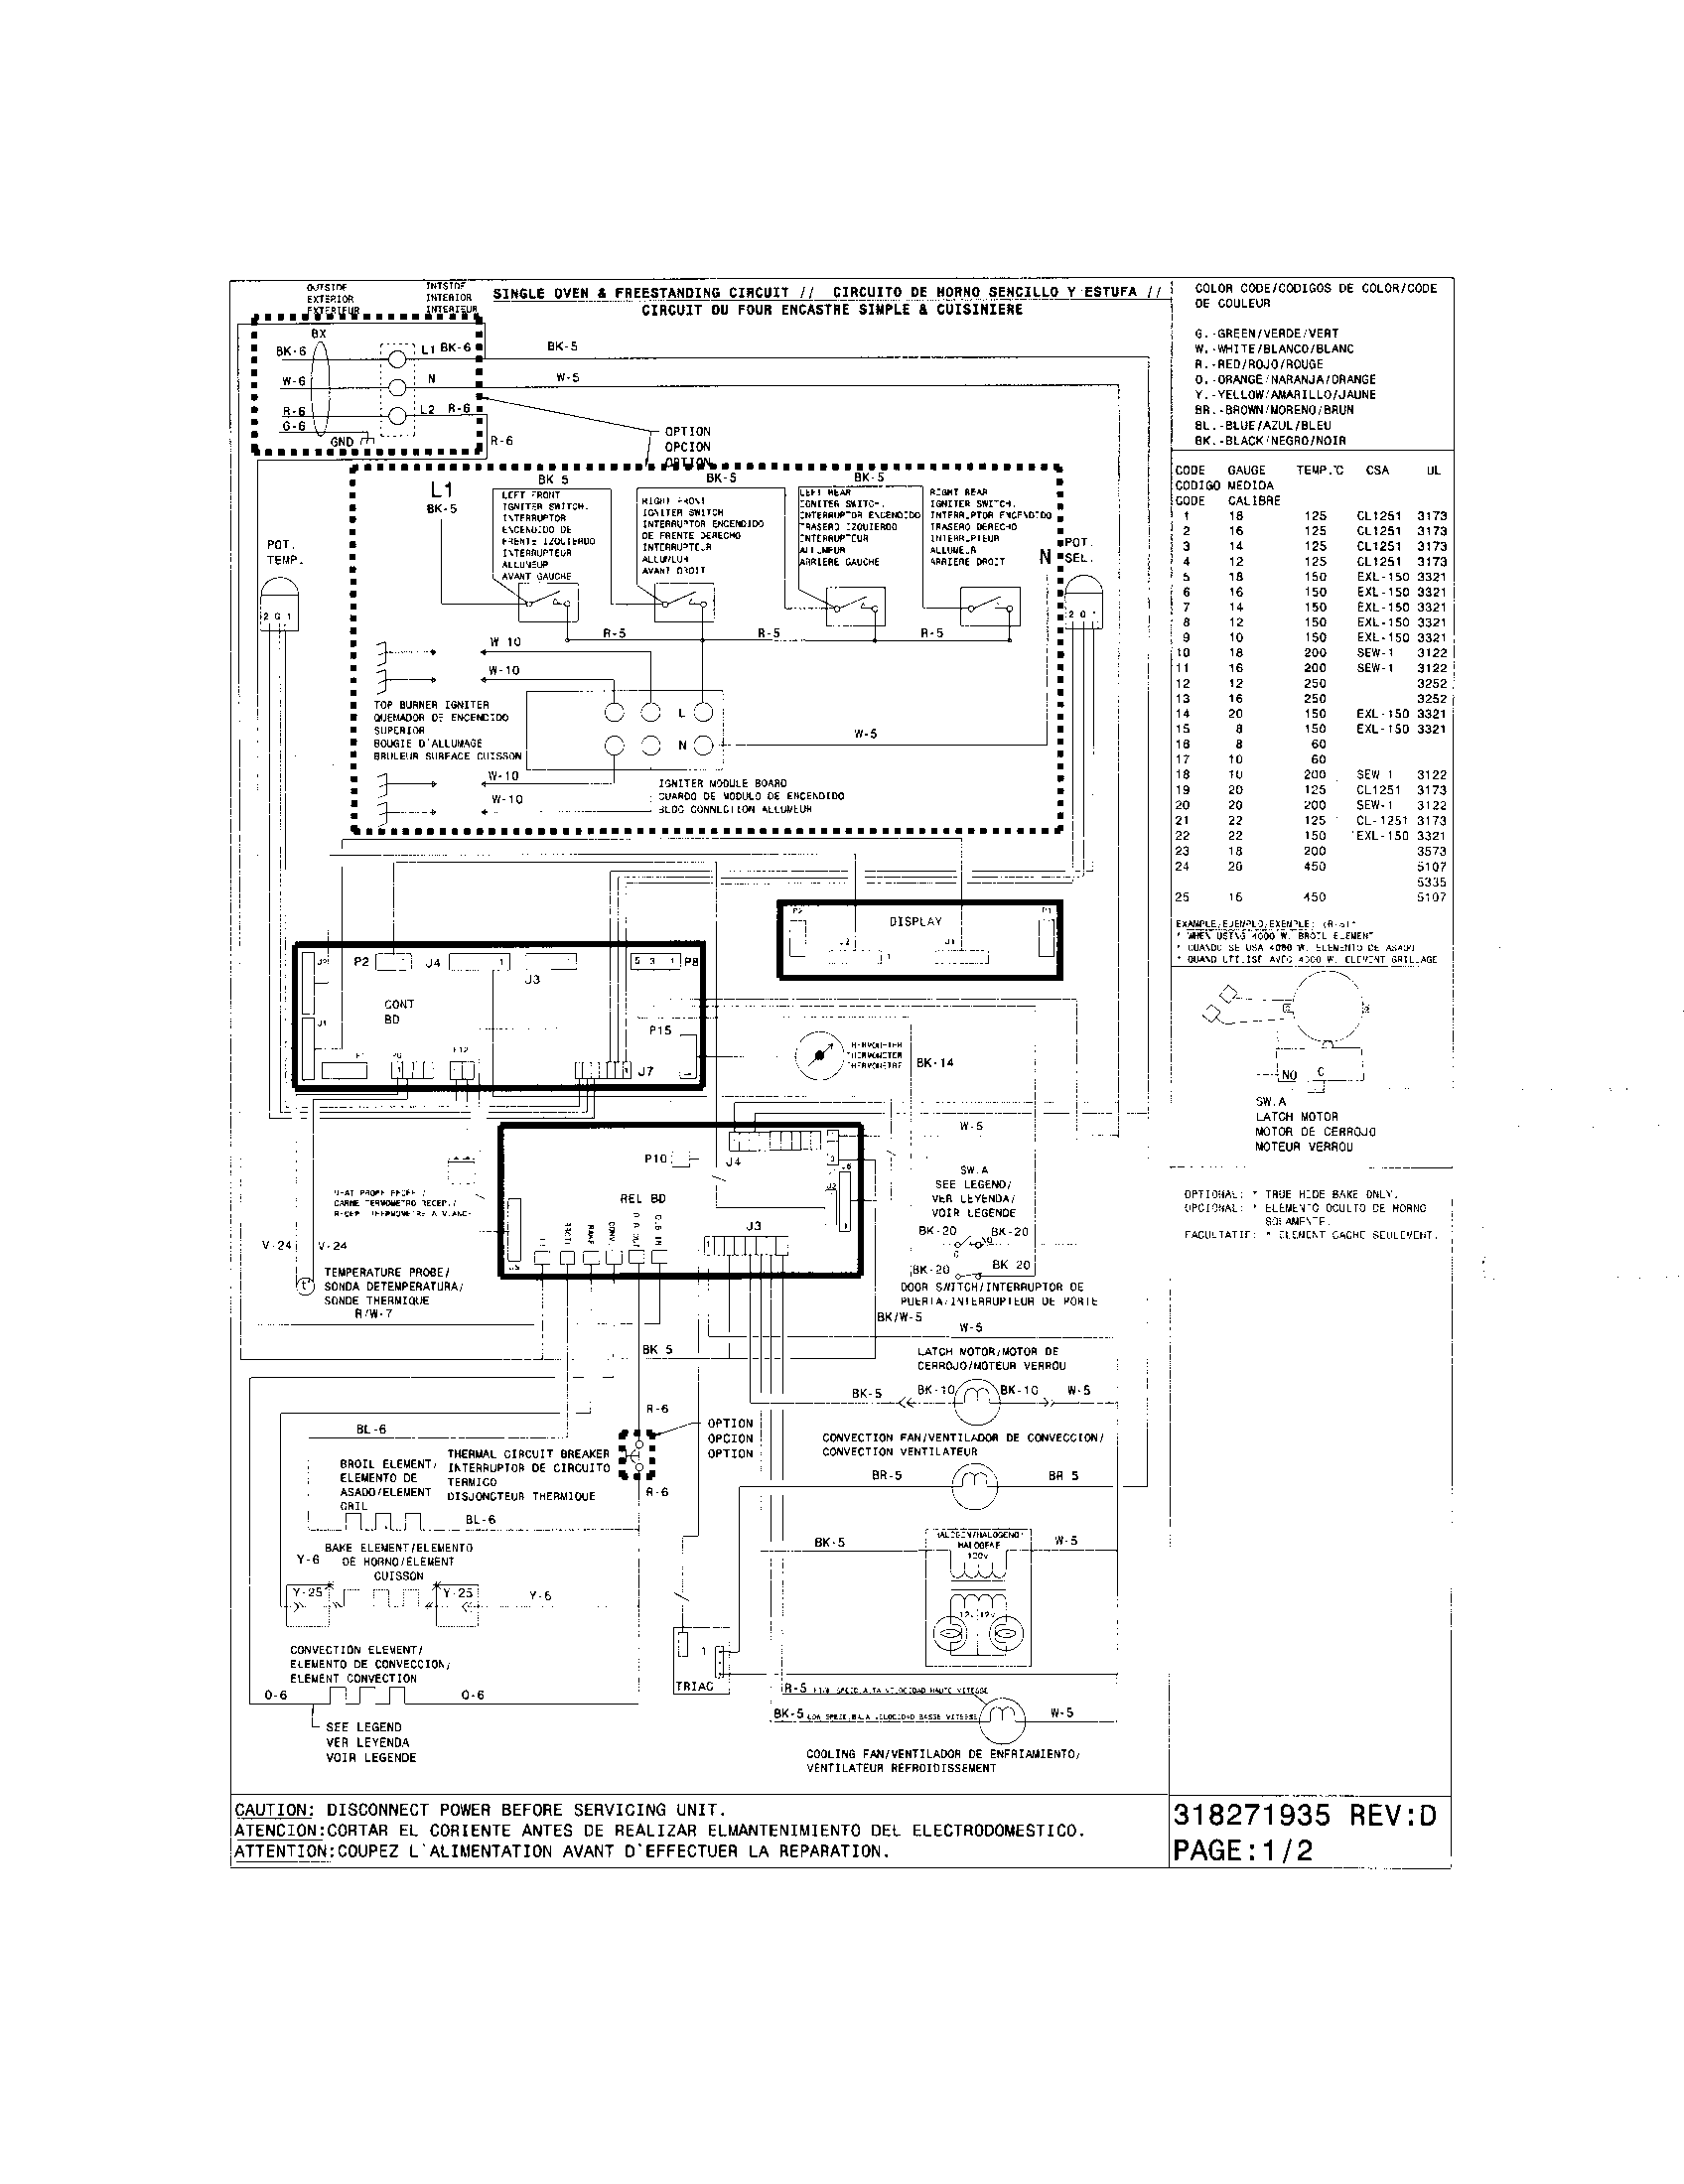 WIRING DIAGRAM Diagram & Parts List for Model 79079523600